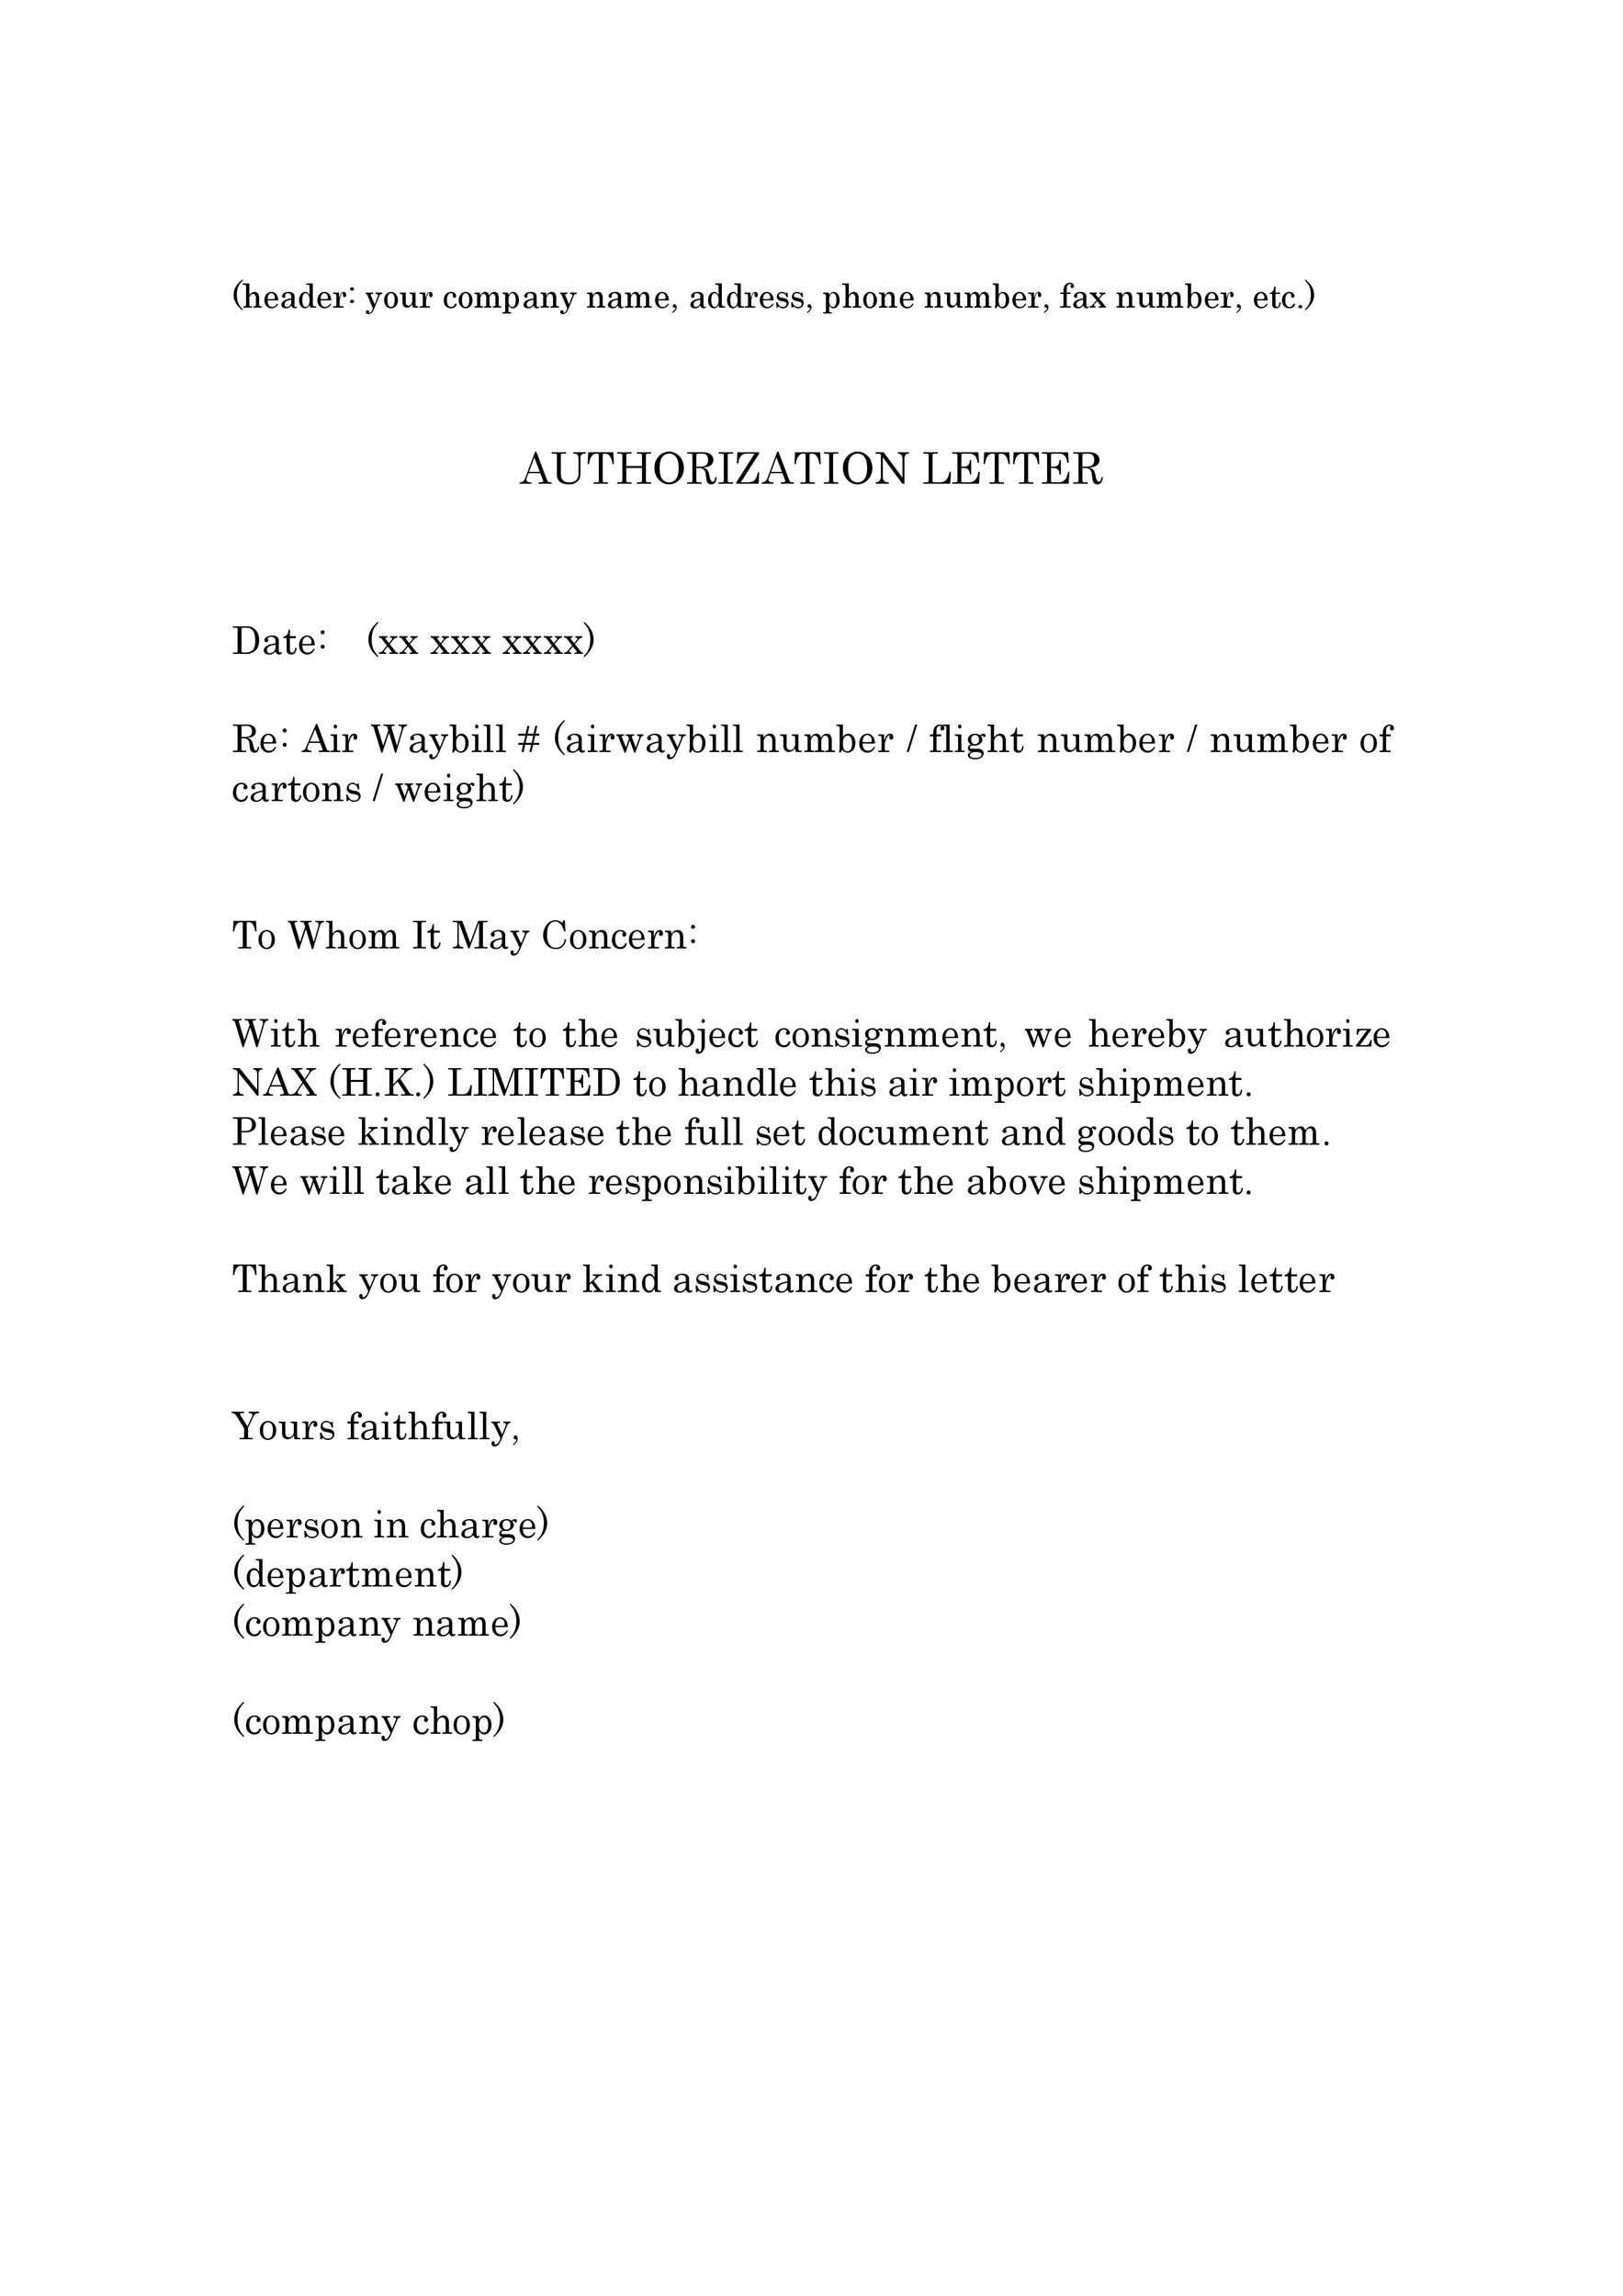 Free Authorization Letter 33